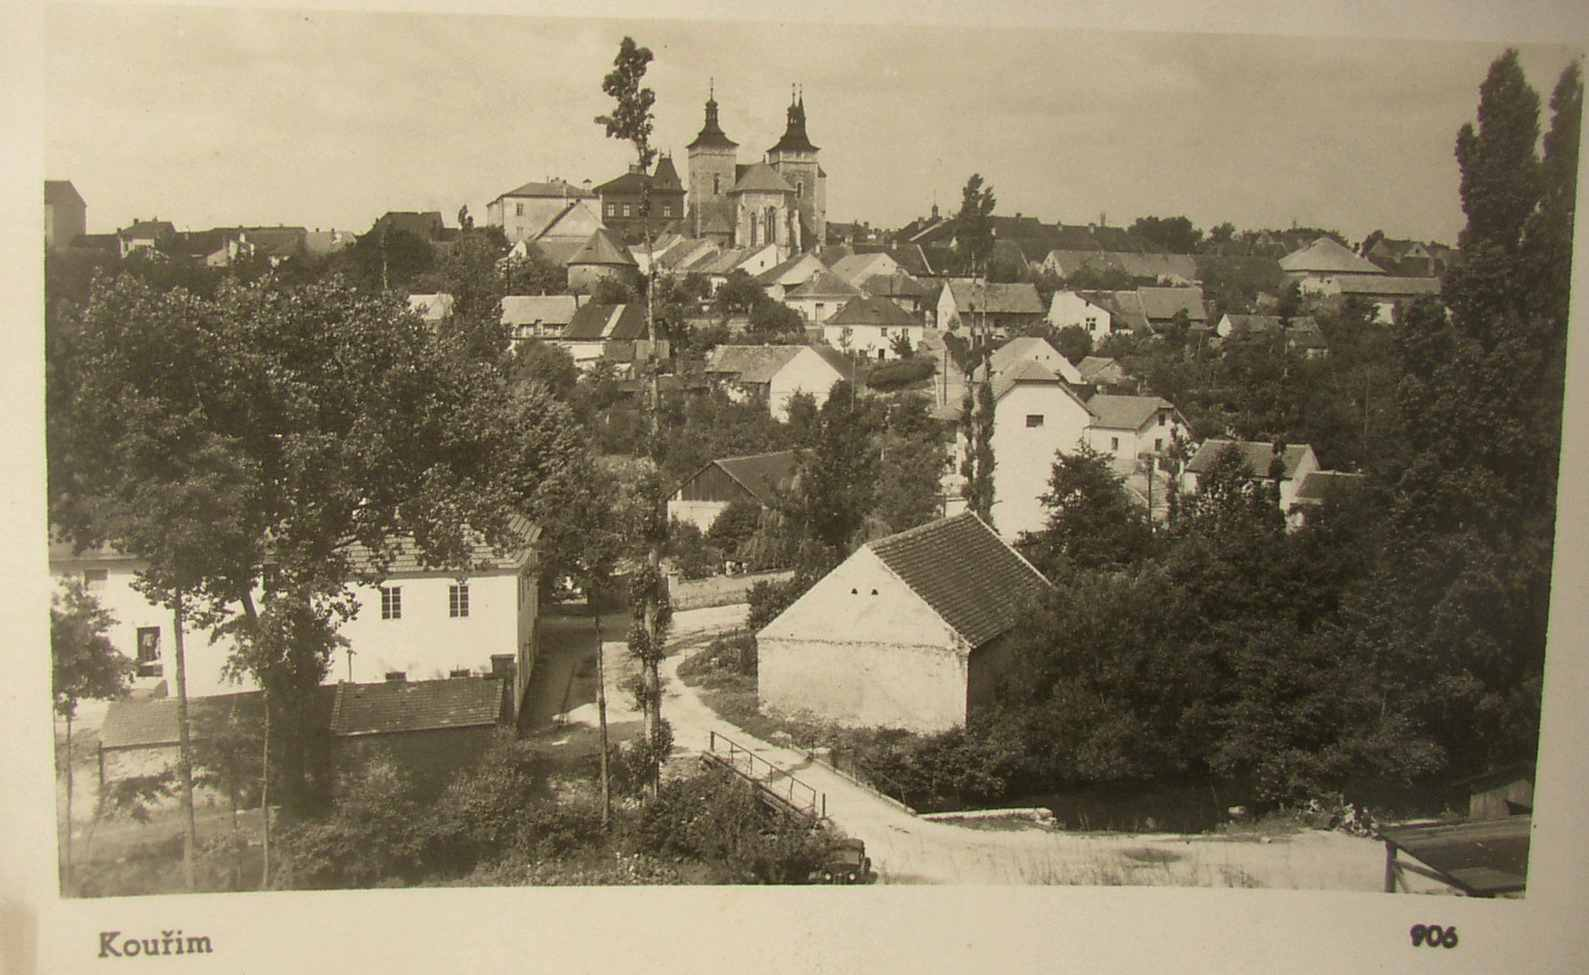 an old postcard of Kourim (probably late 1930s)